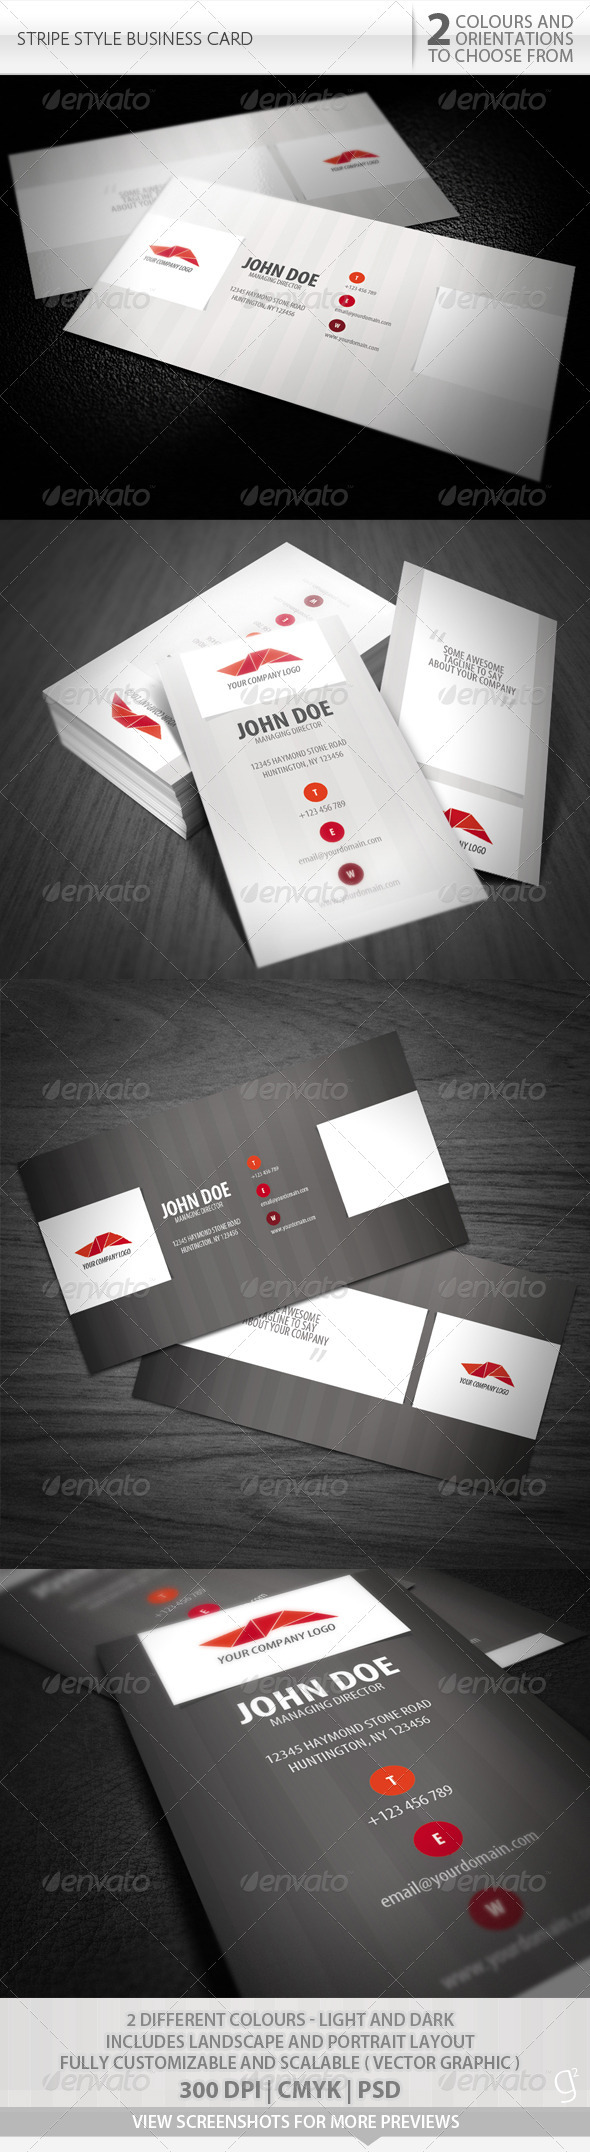 GraphicRiver Stripe Style Business Card 495769